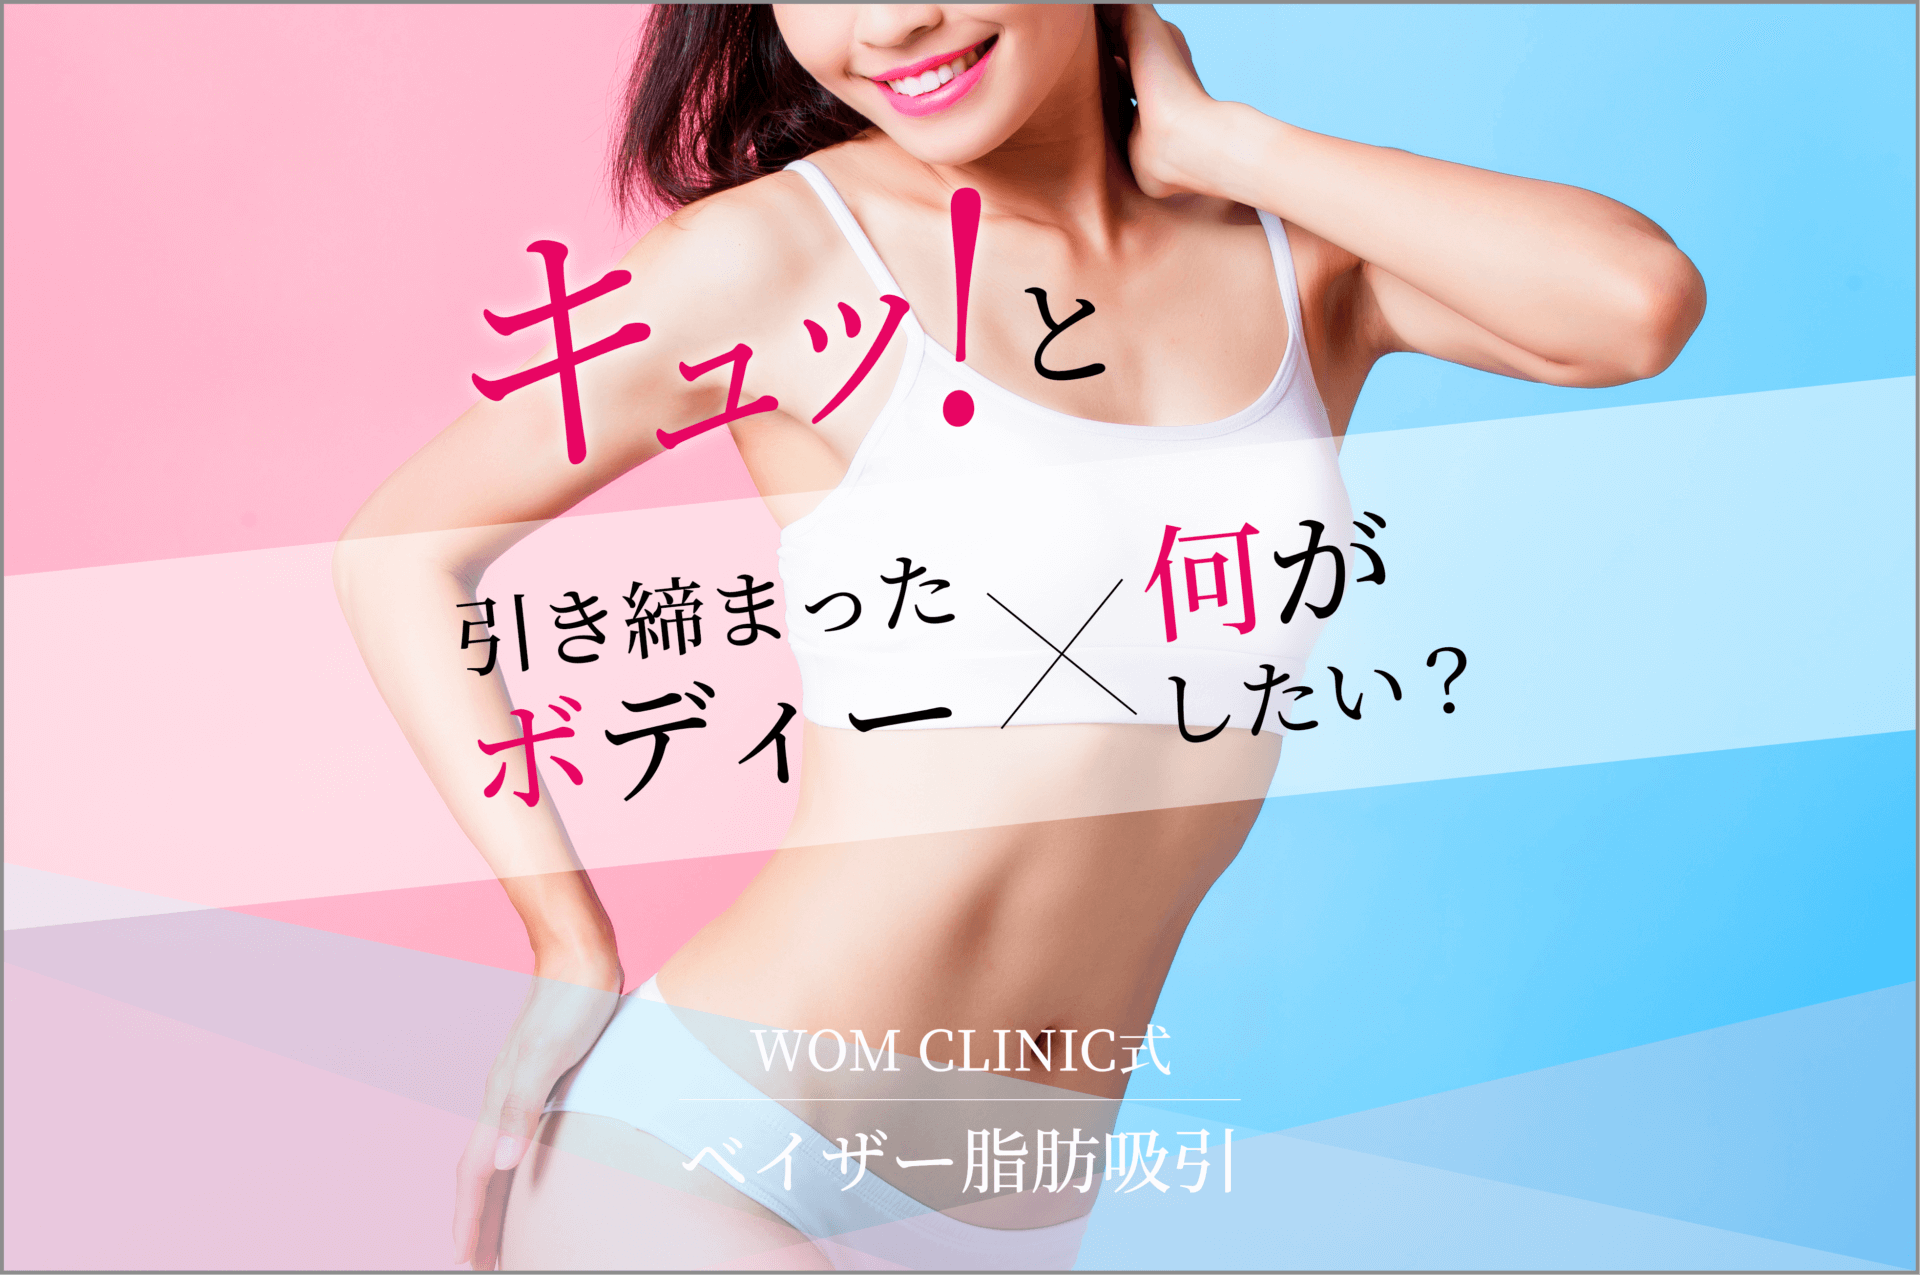 Wom clinic Ginza脂肪吸引LP@2x